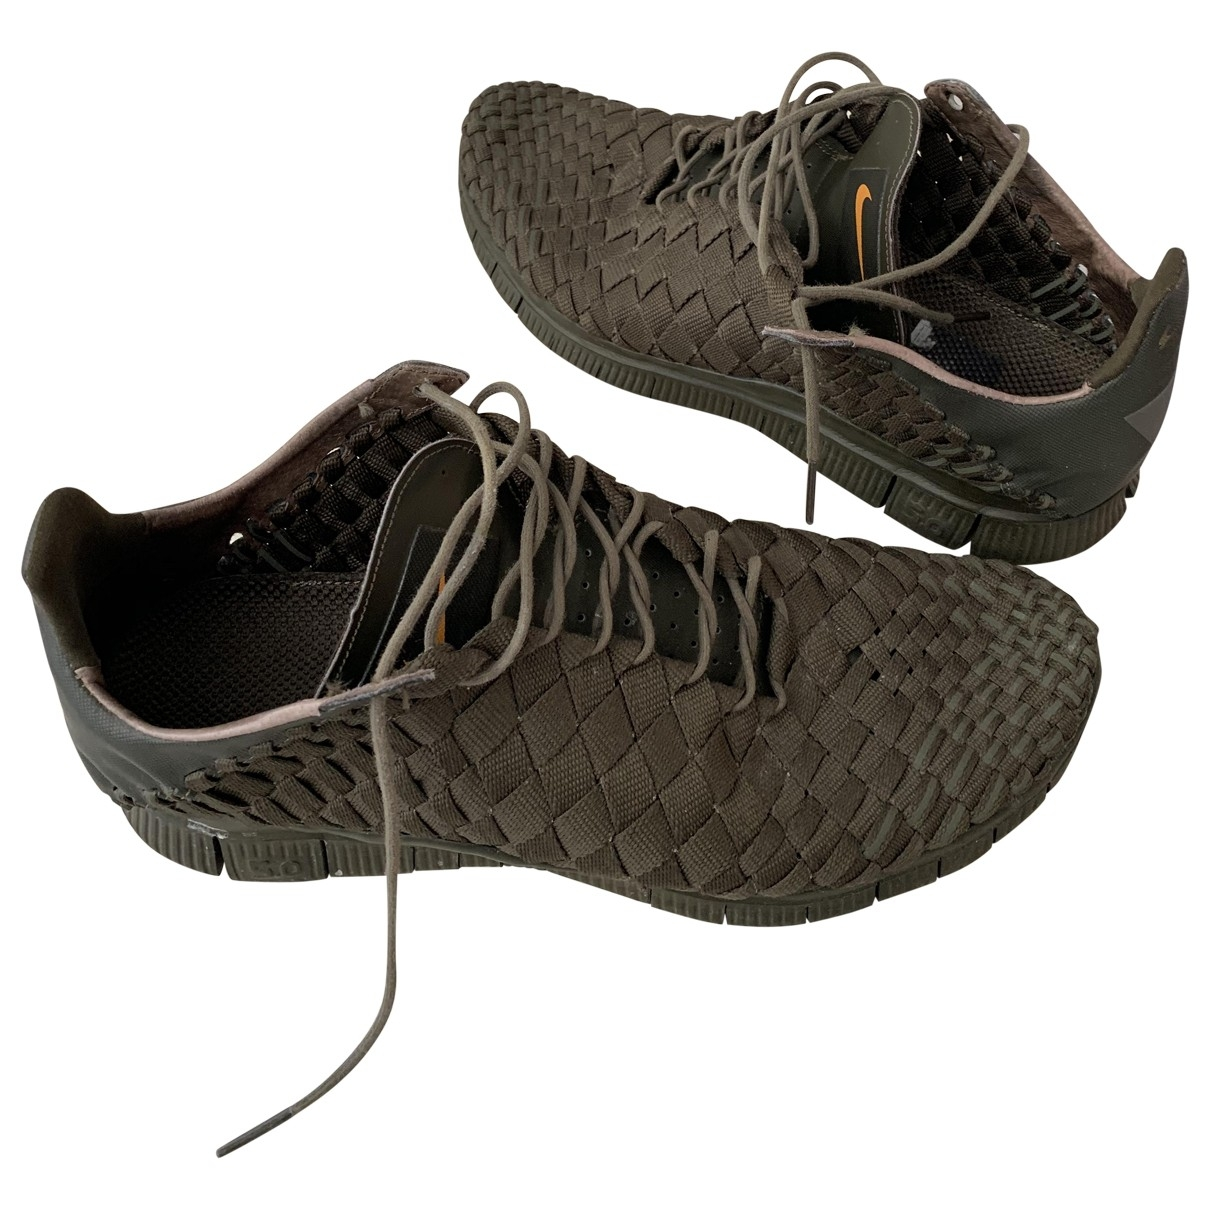 Nike Air Woven Green Cloth Trainers for Men 11 US